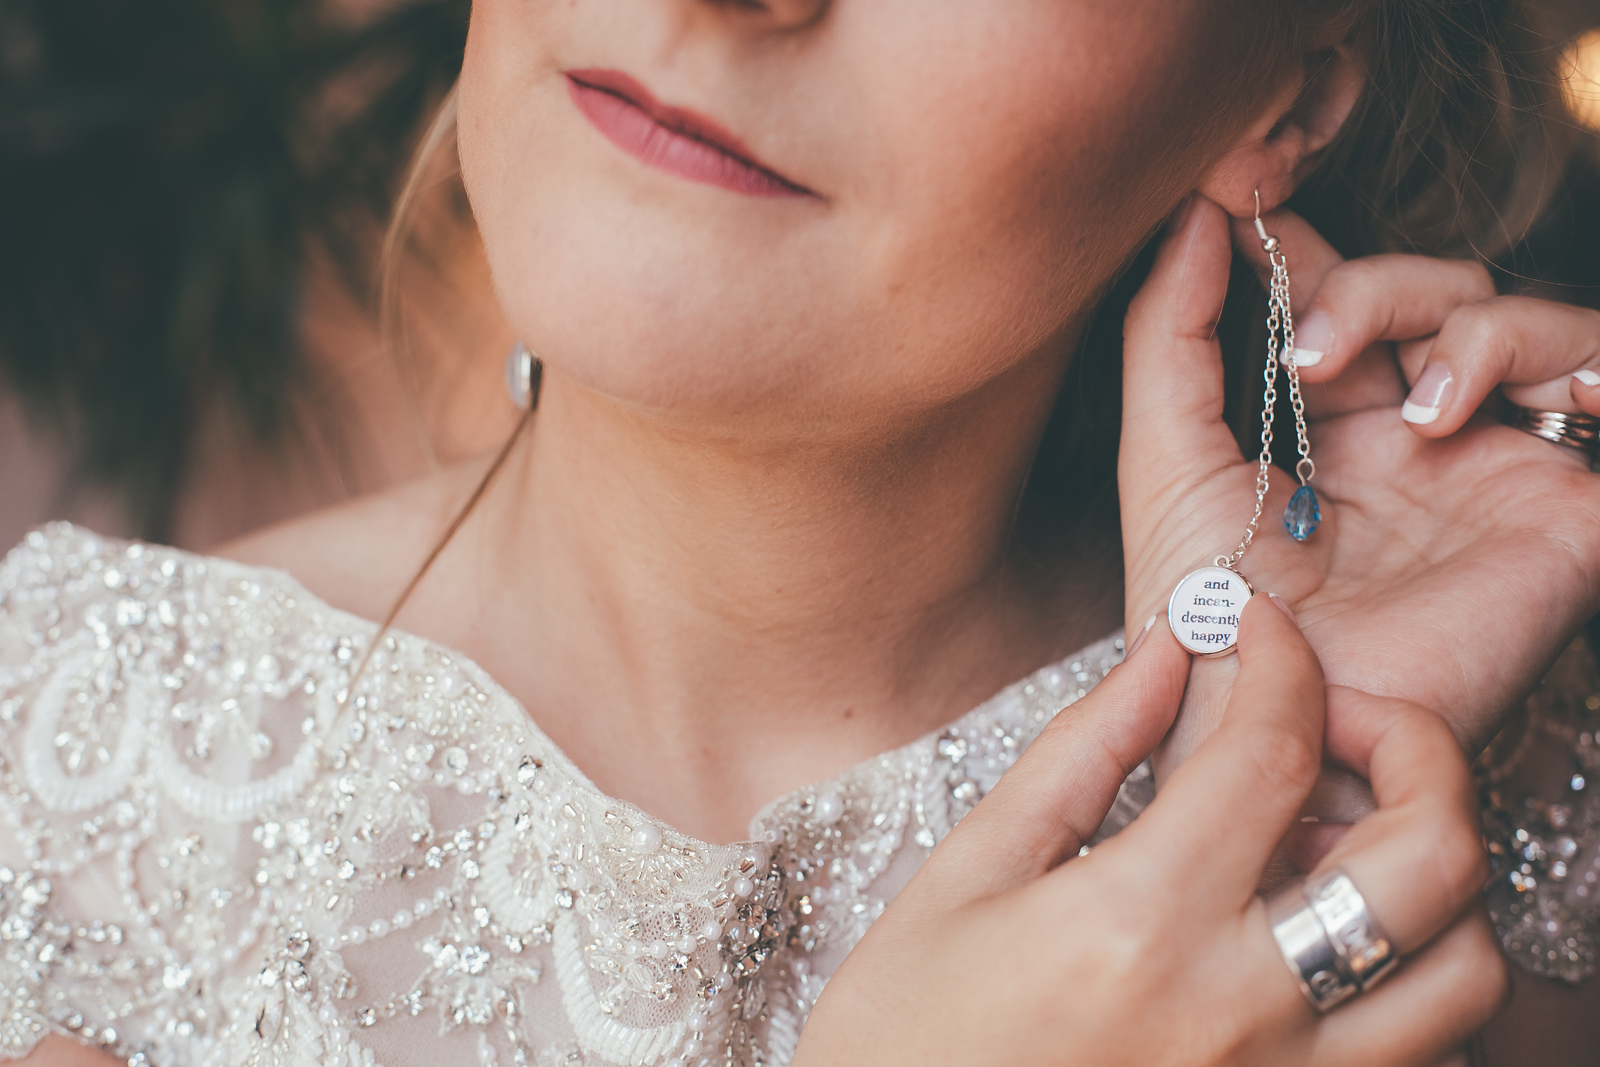 close up shot of a brides earring that reads and incandescently happy